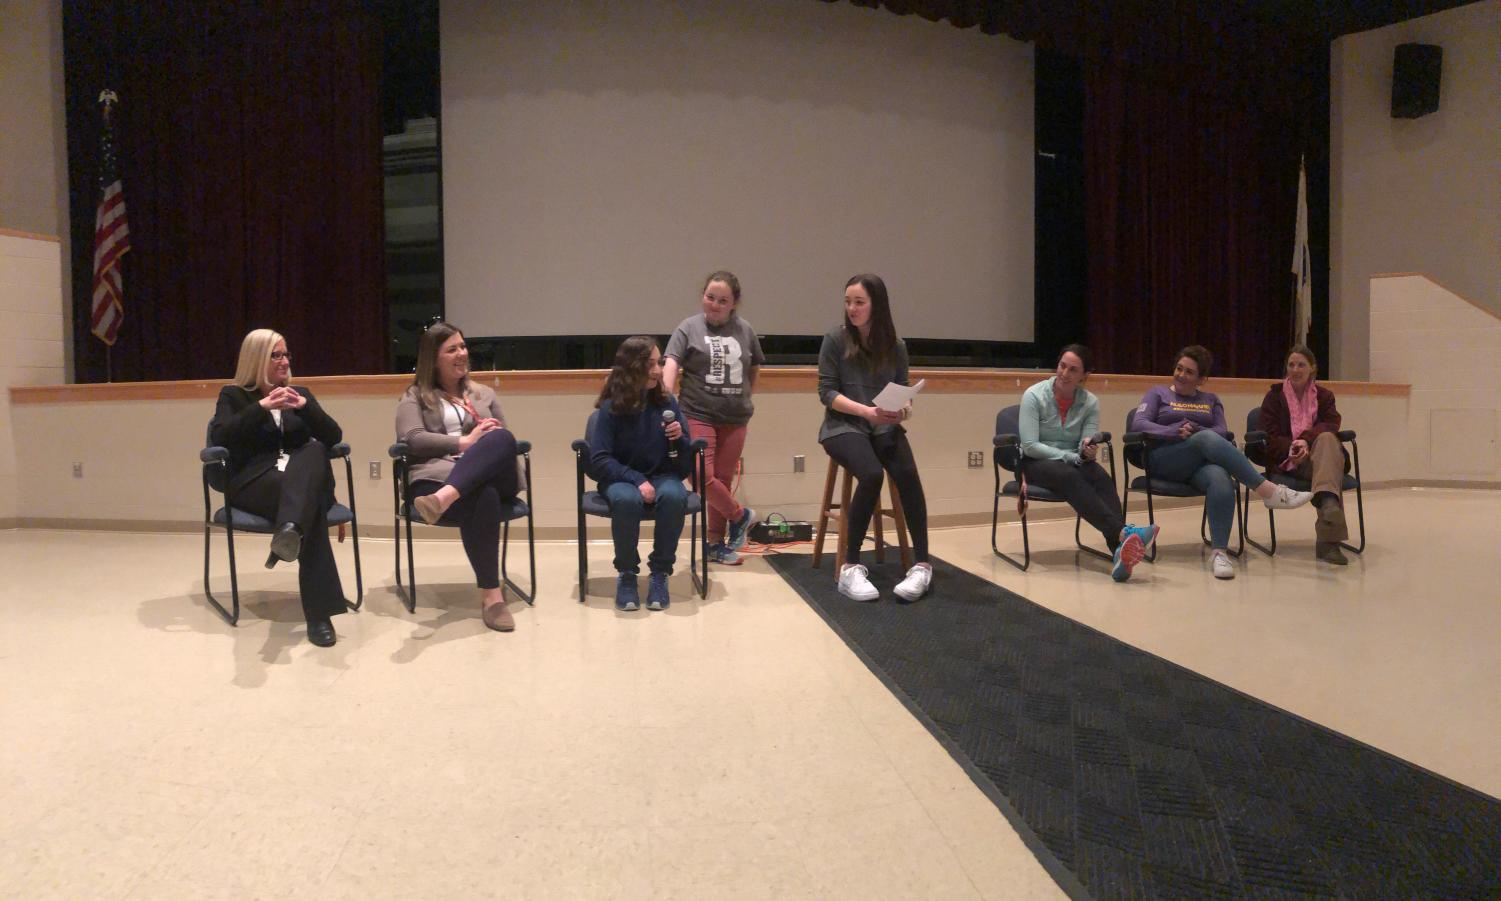 Towards the end of the inclusion assembly on March 14, a panel of students and teachers shared why inclusion was important to them.